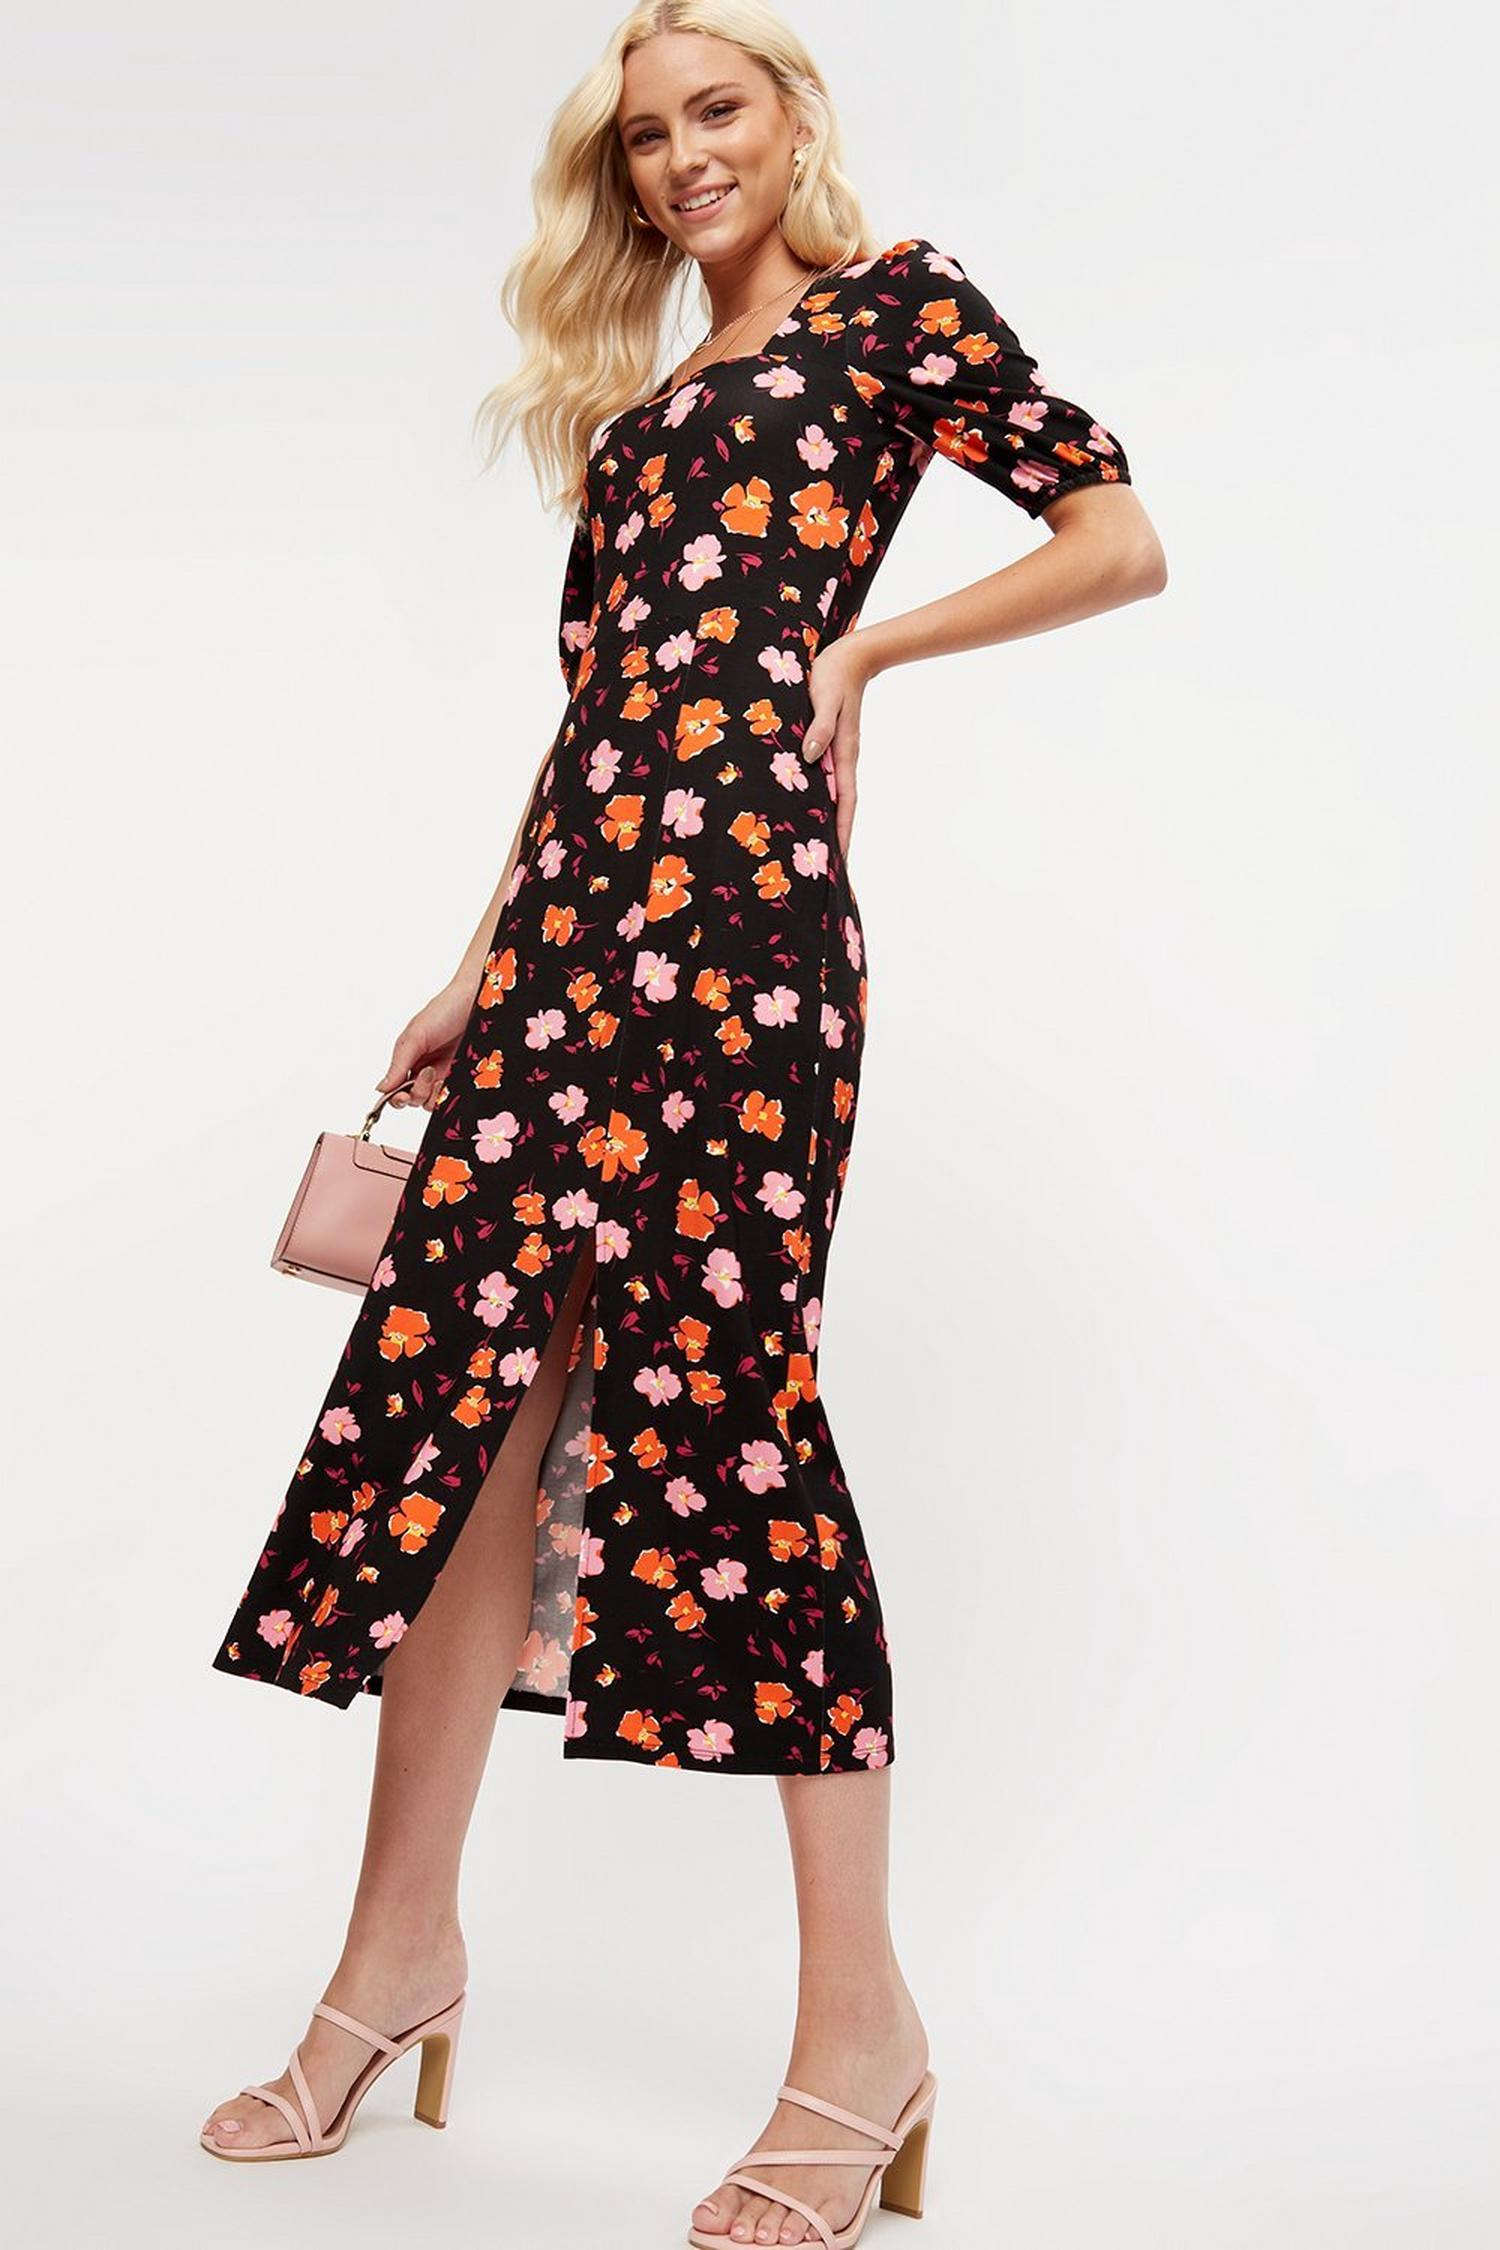 155 Pink And Red Floral Square Neck Midi Dress image number 0